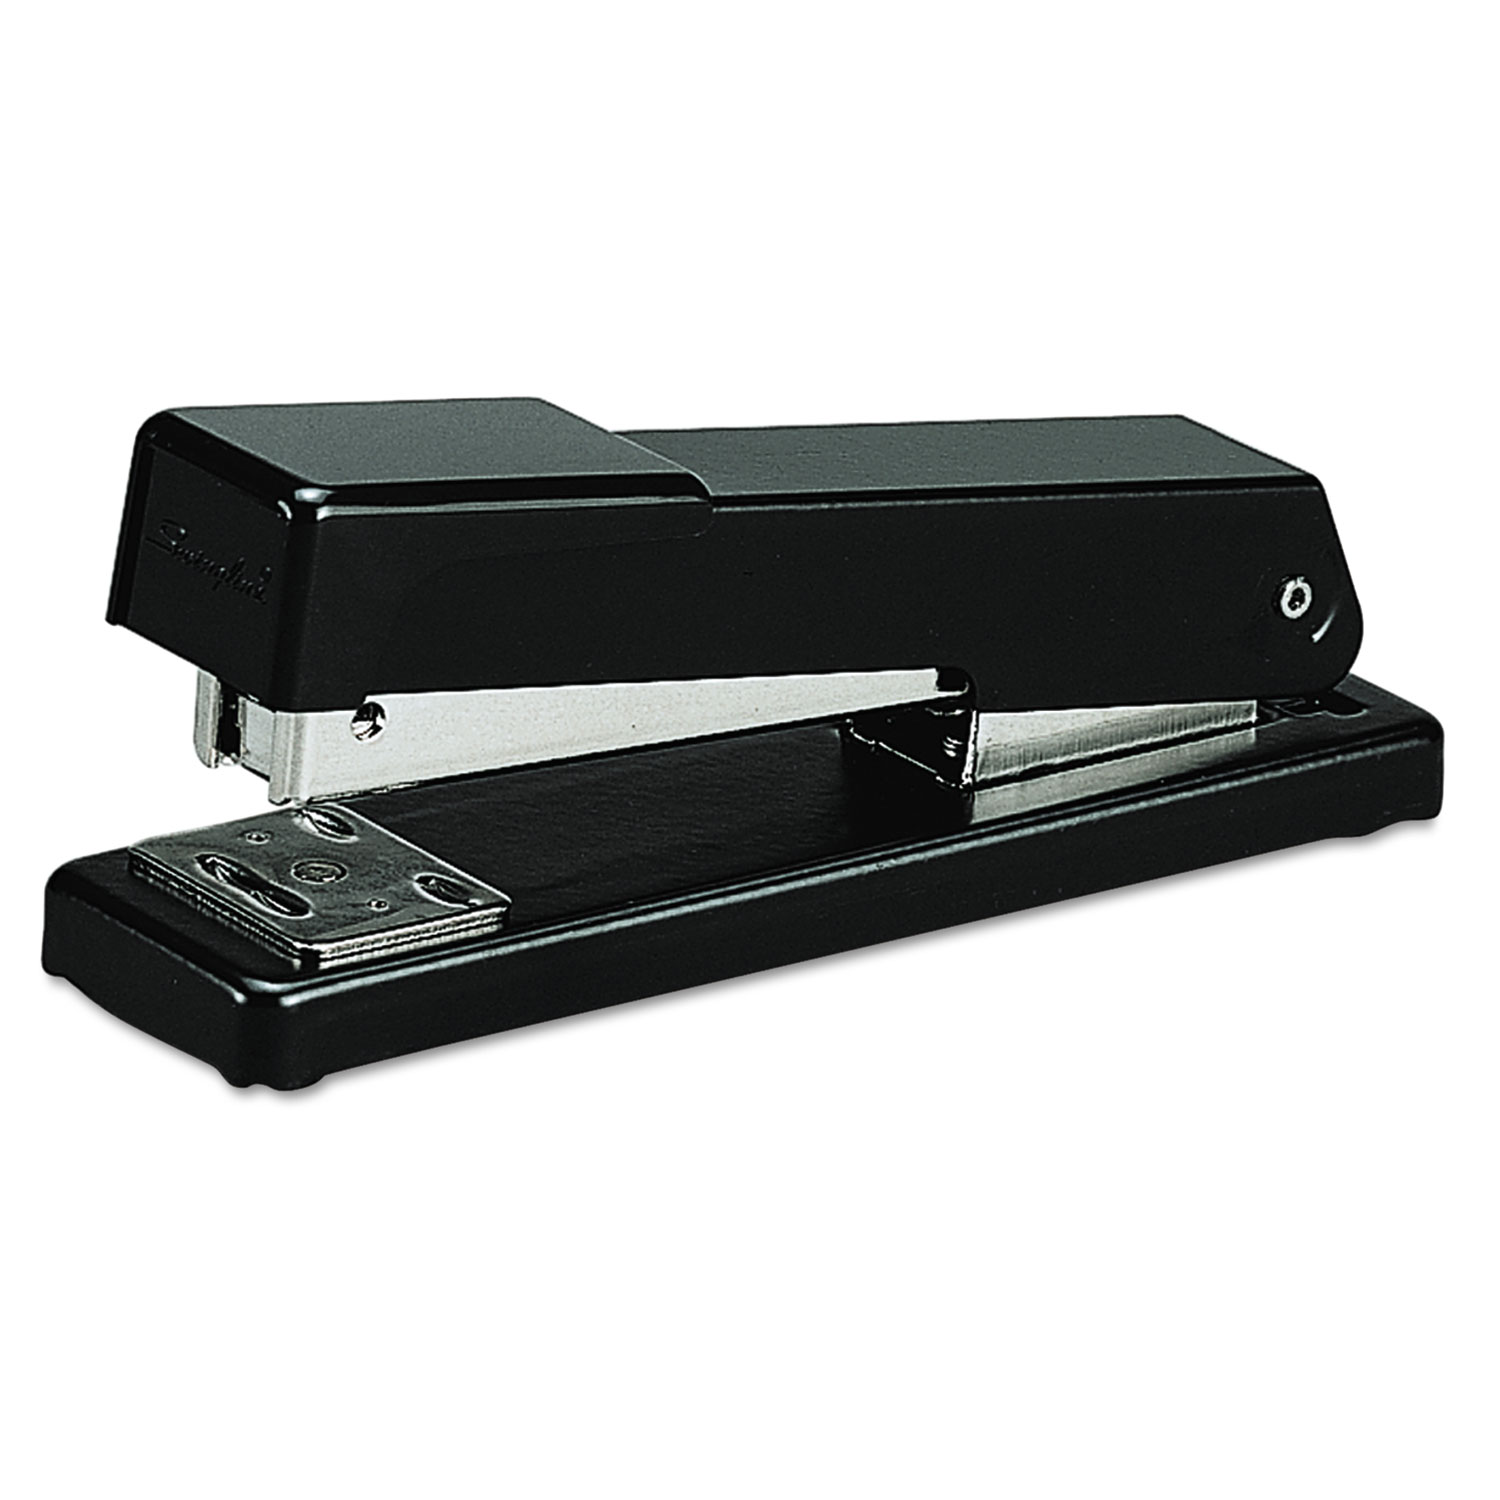 Compact Desk Stapler, 20-Sheet Capacity, Black